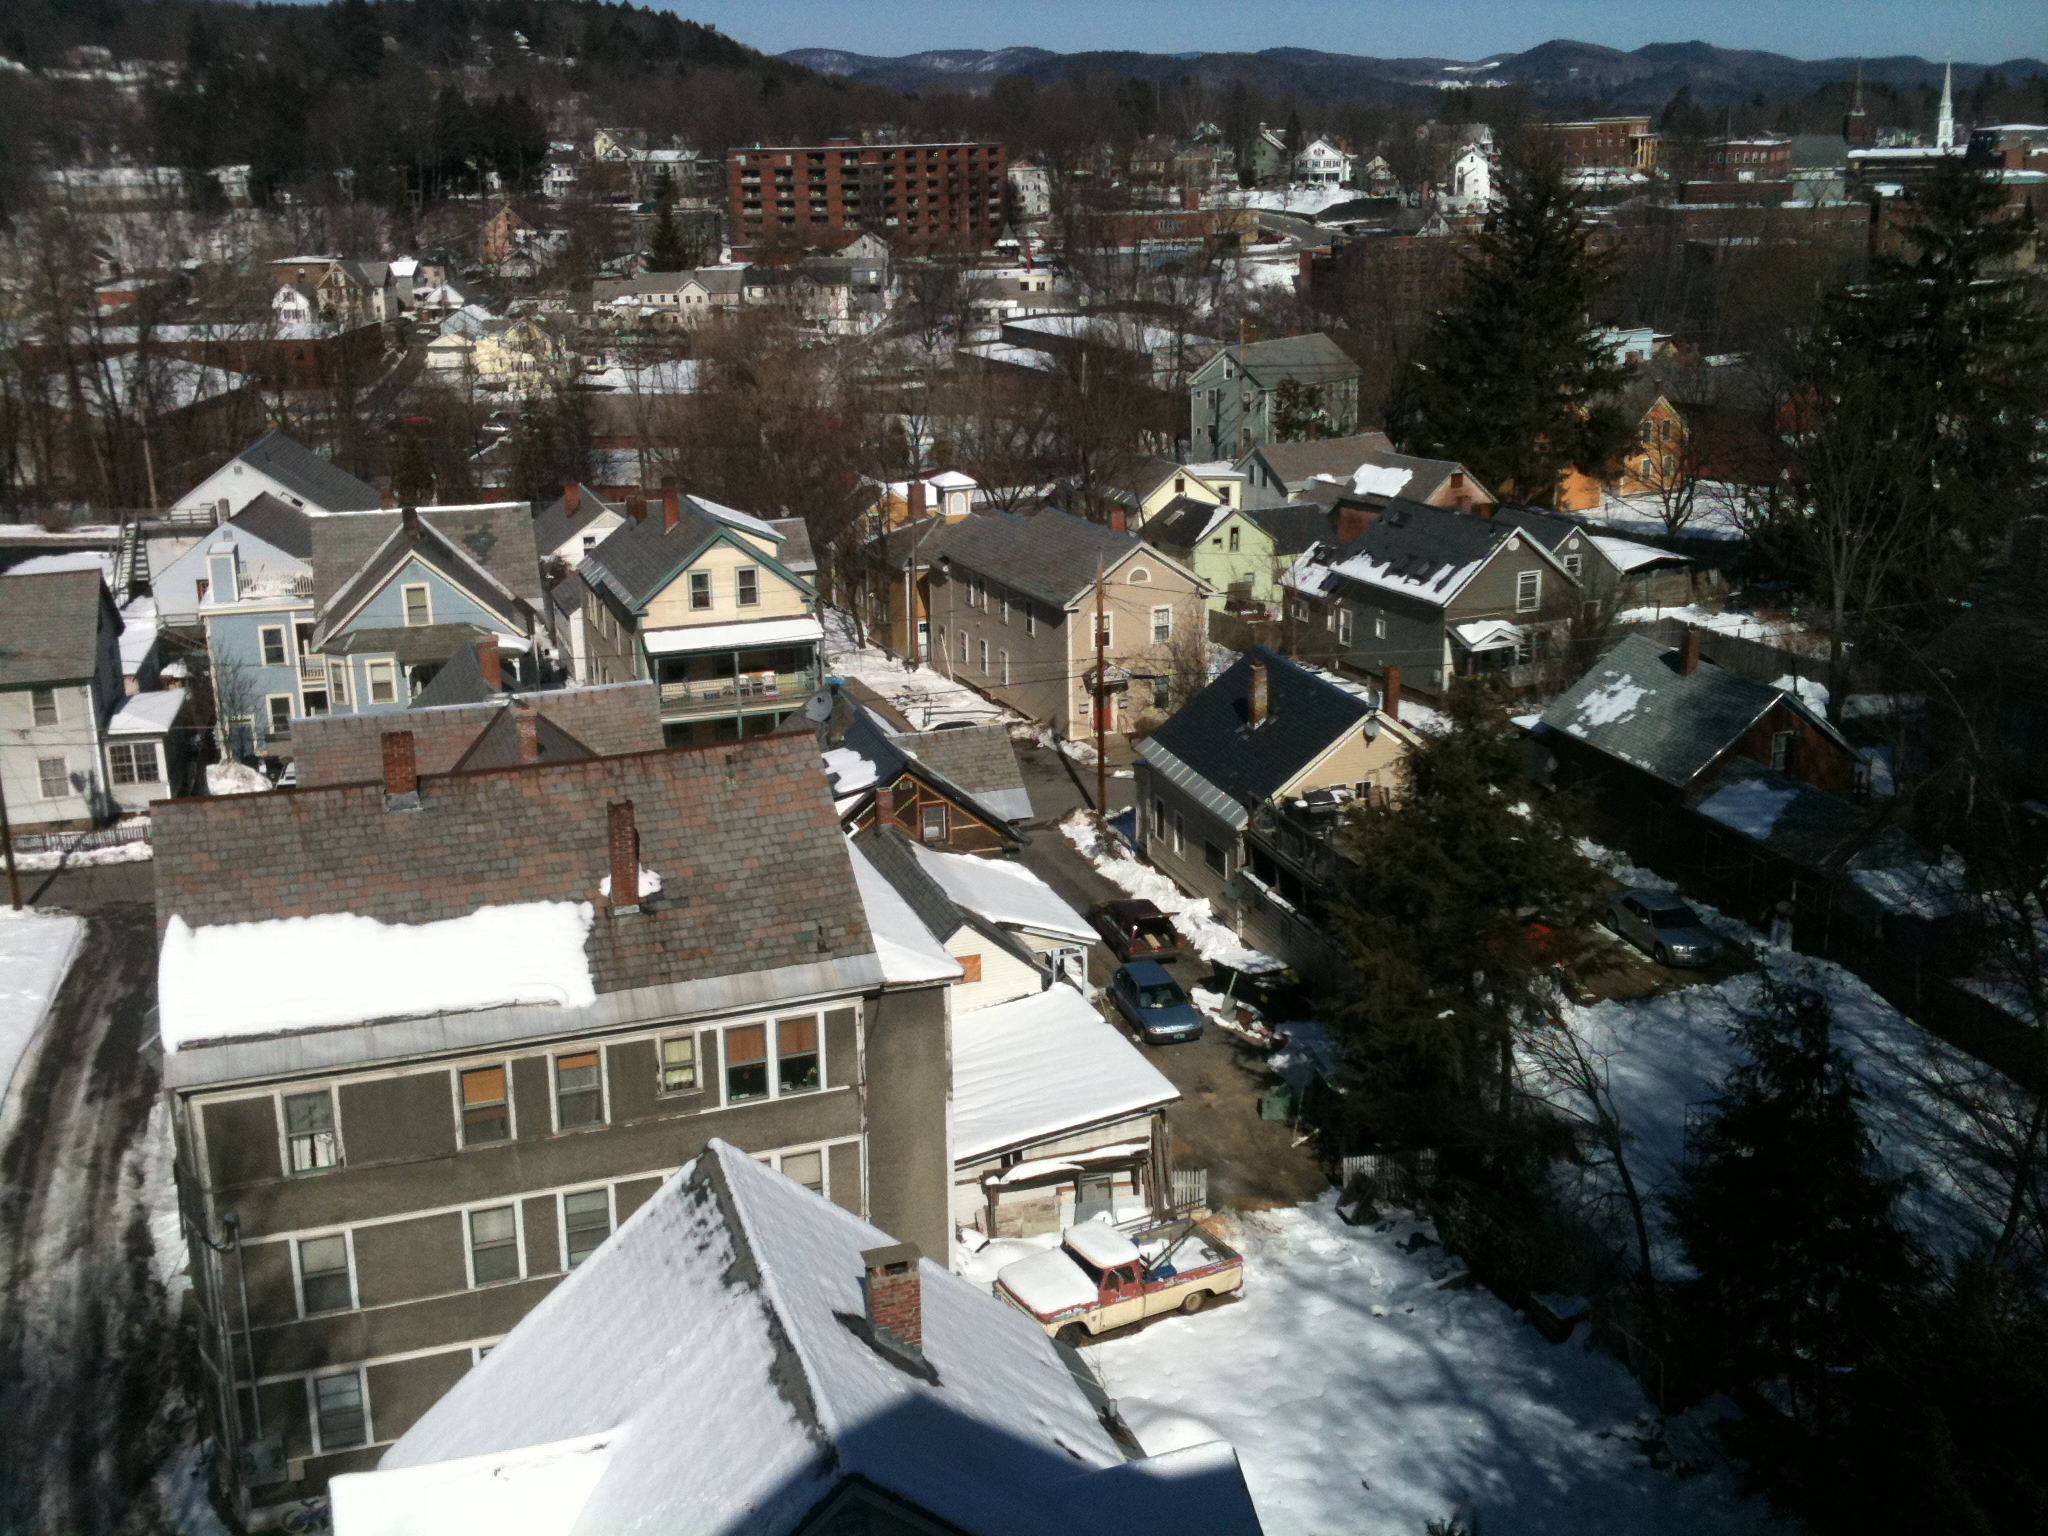 brattleboro guys Find men's issues therapists, psychologists and men's issues counseling in brattleboro, windham county, vermont, get help for men's issues in brattleboro.